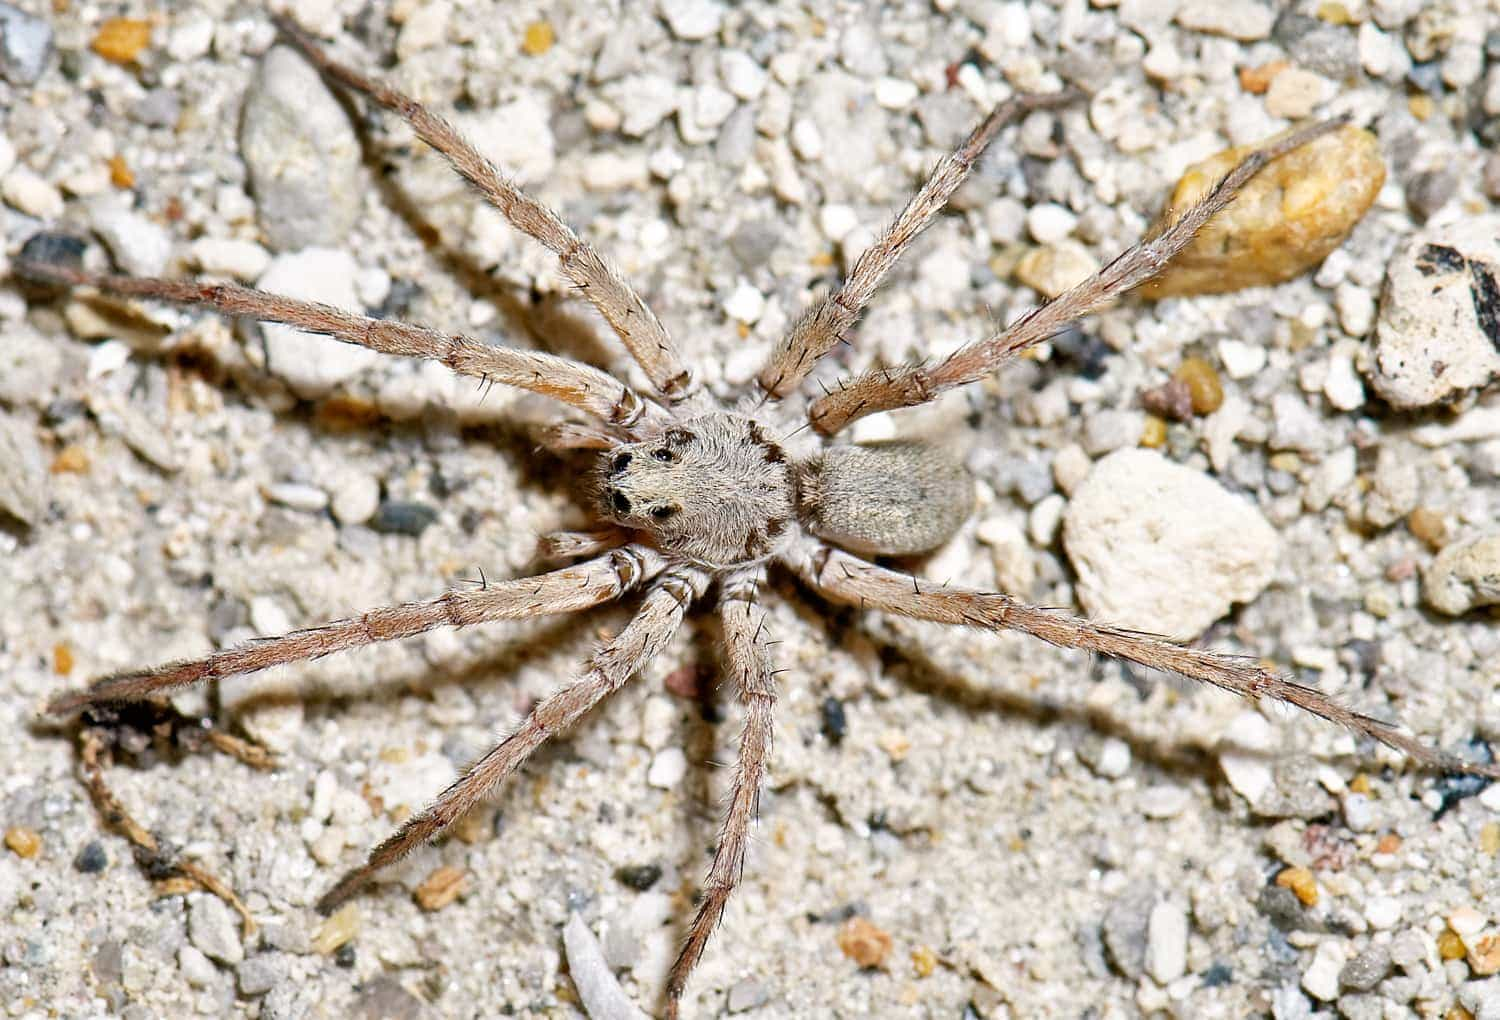 Picture of Geolycosa (Burrowing Wolf Spiders) - Male - Dorsal